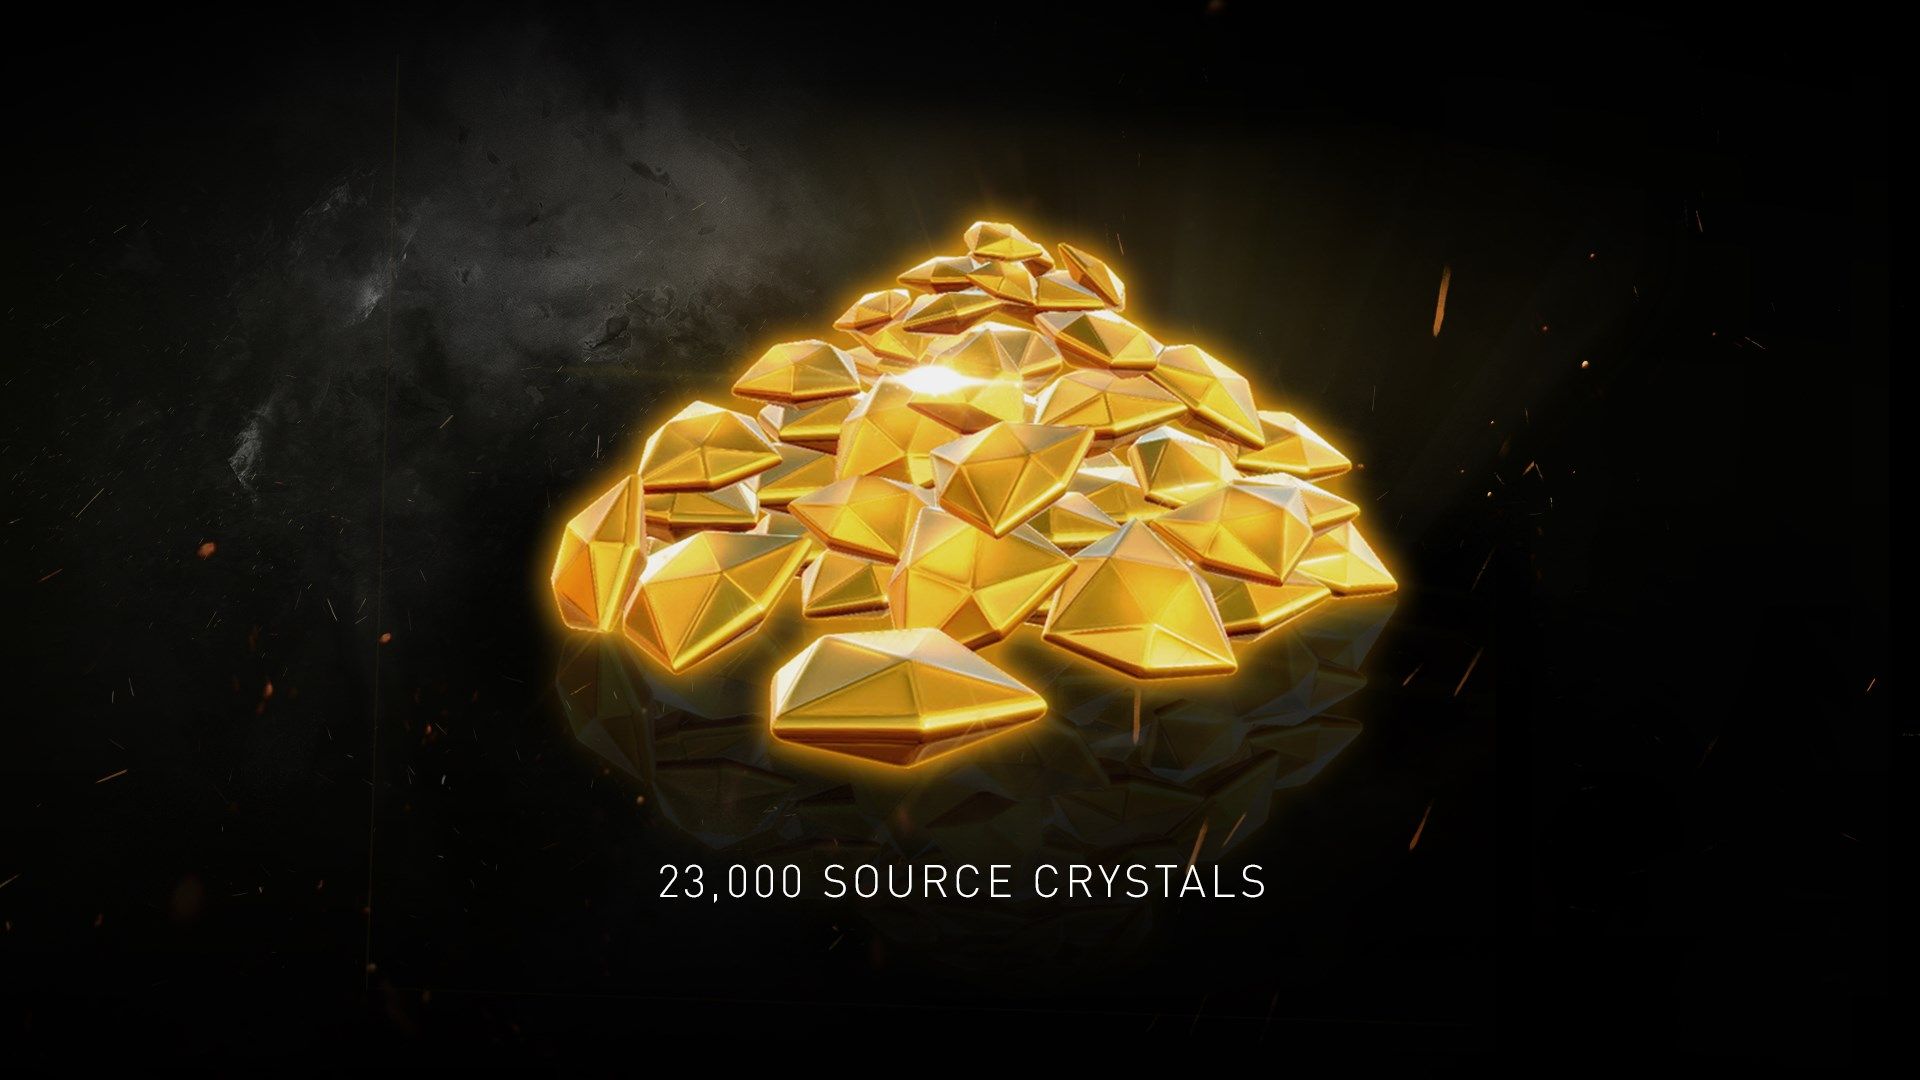 Injustice™ 2 - 23,000 Source Crystals